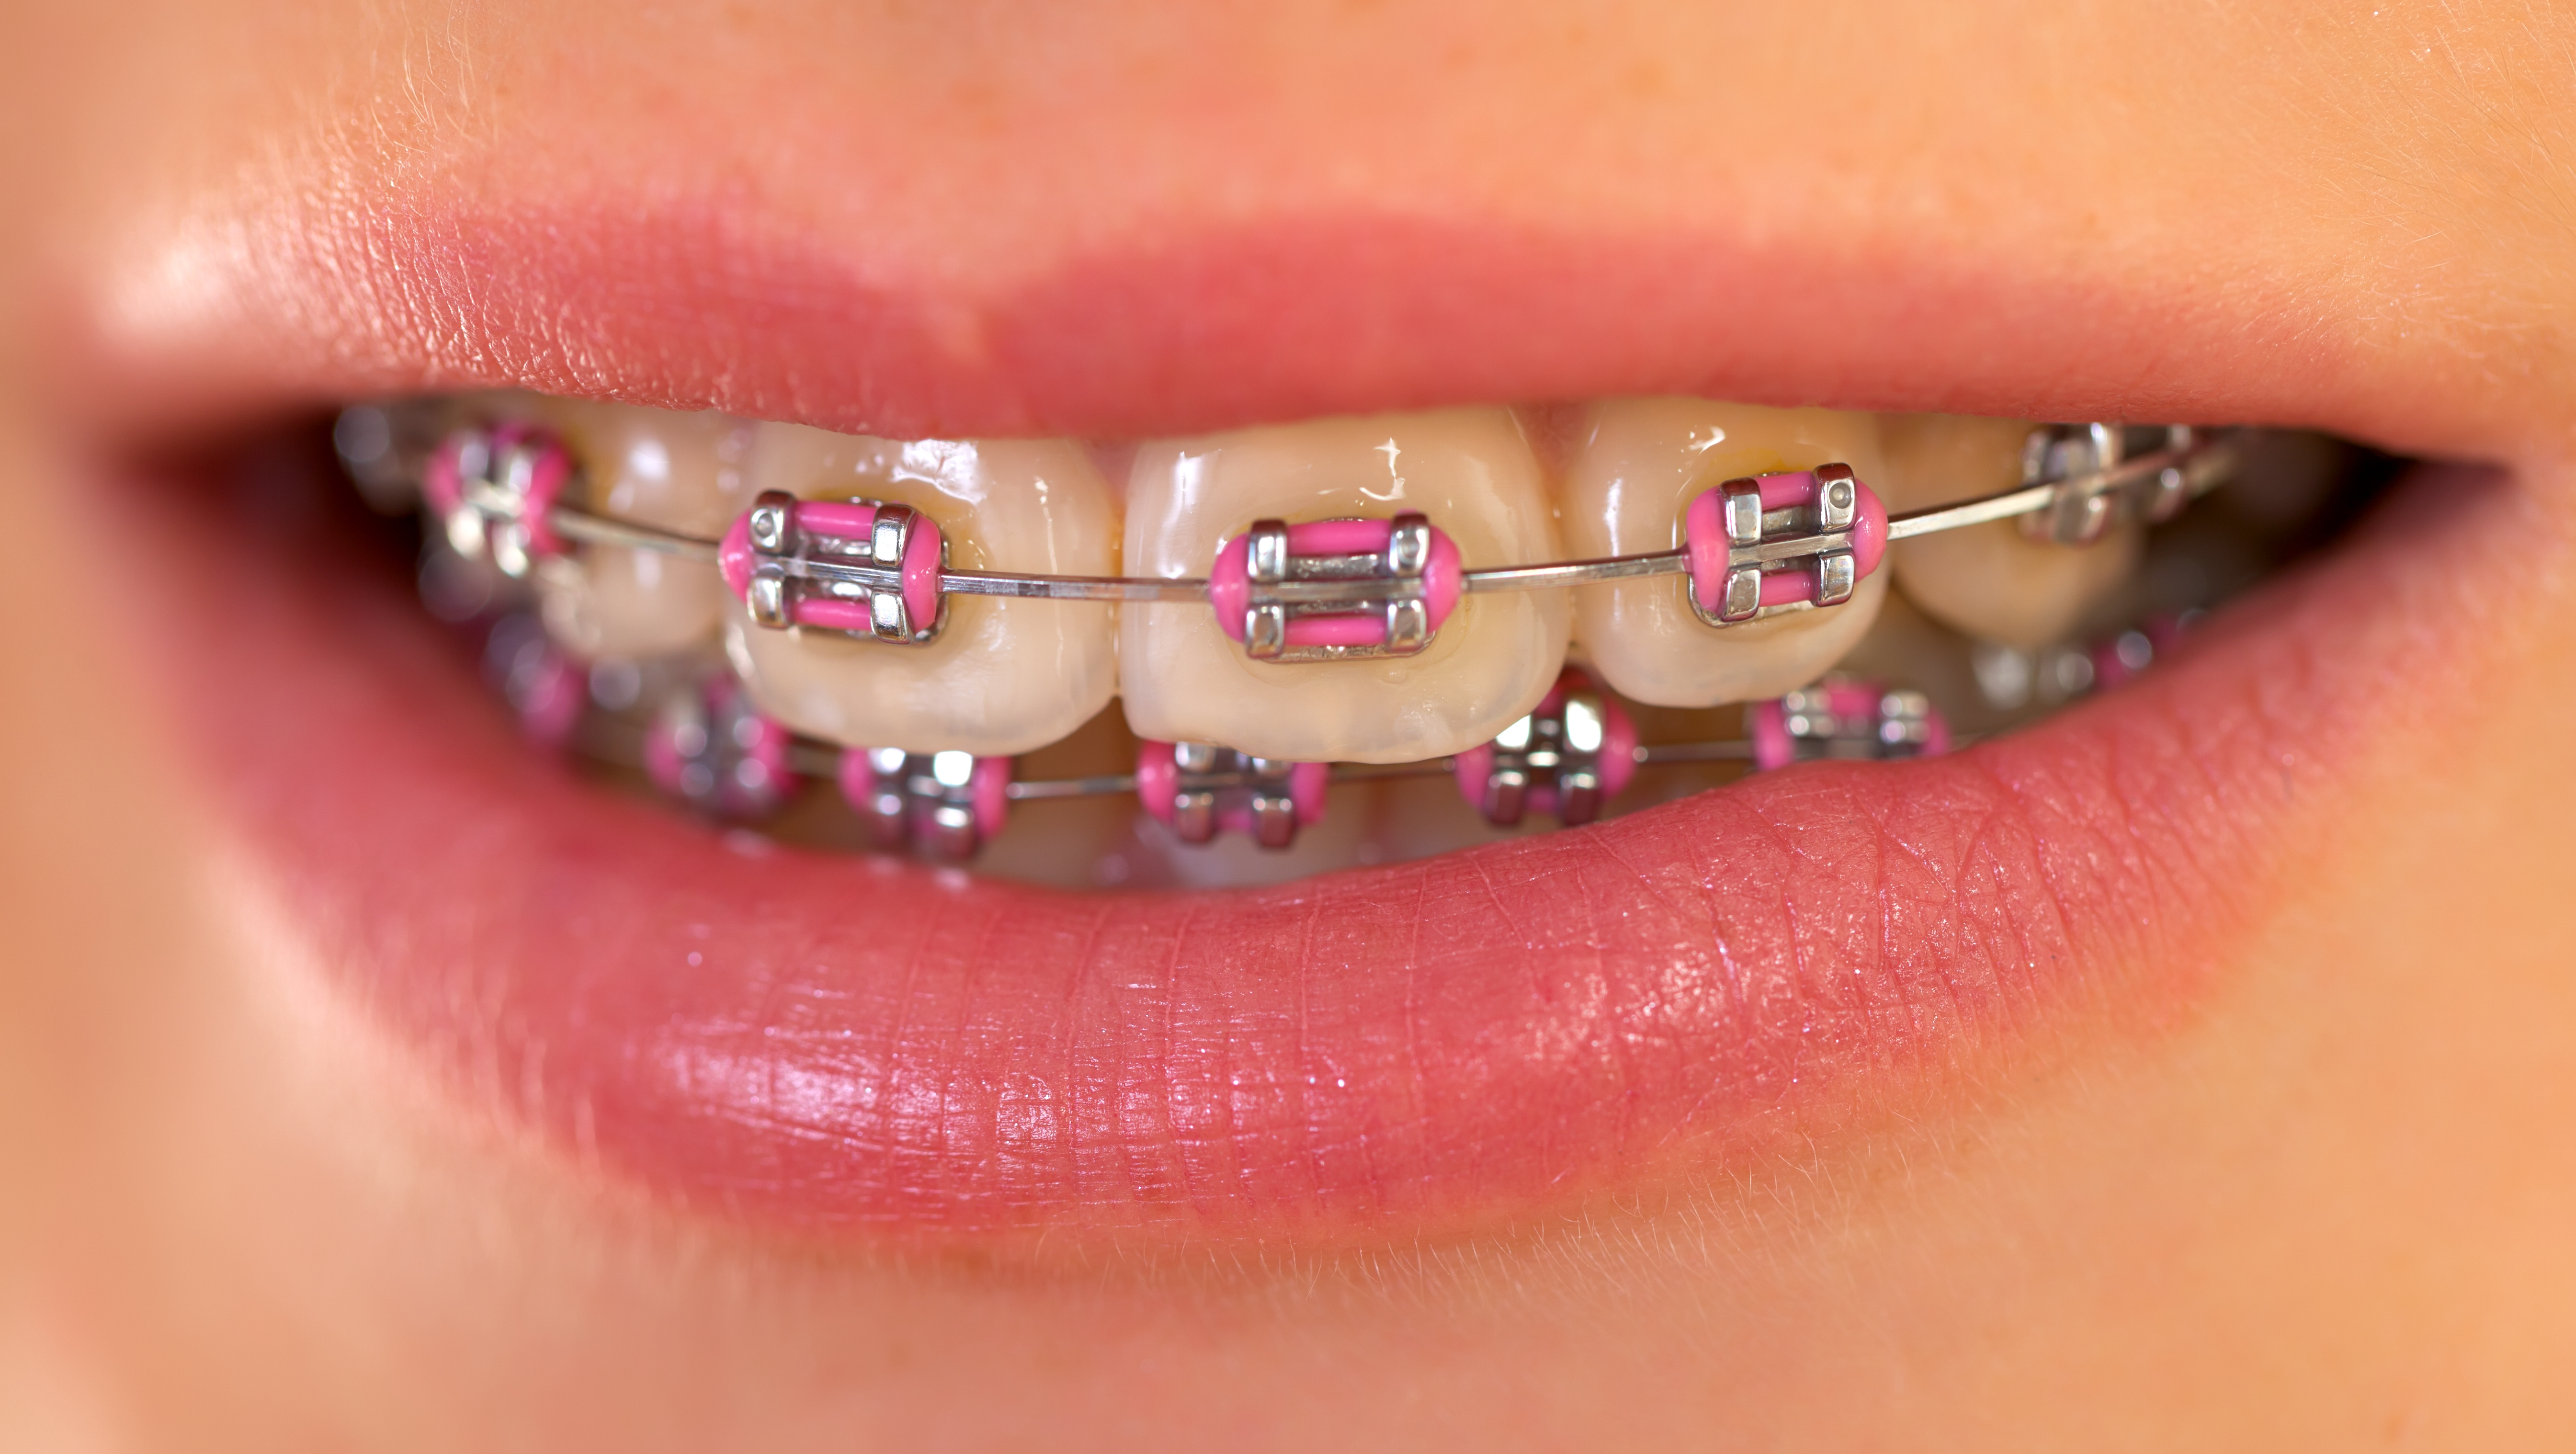 Real orthodontic answers